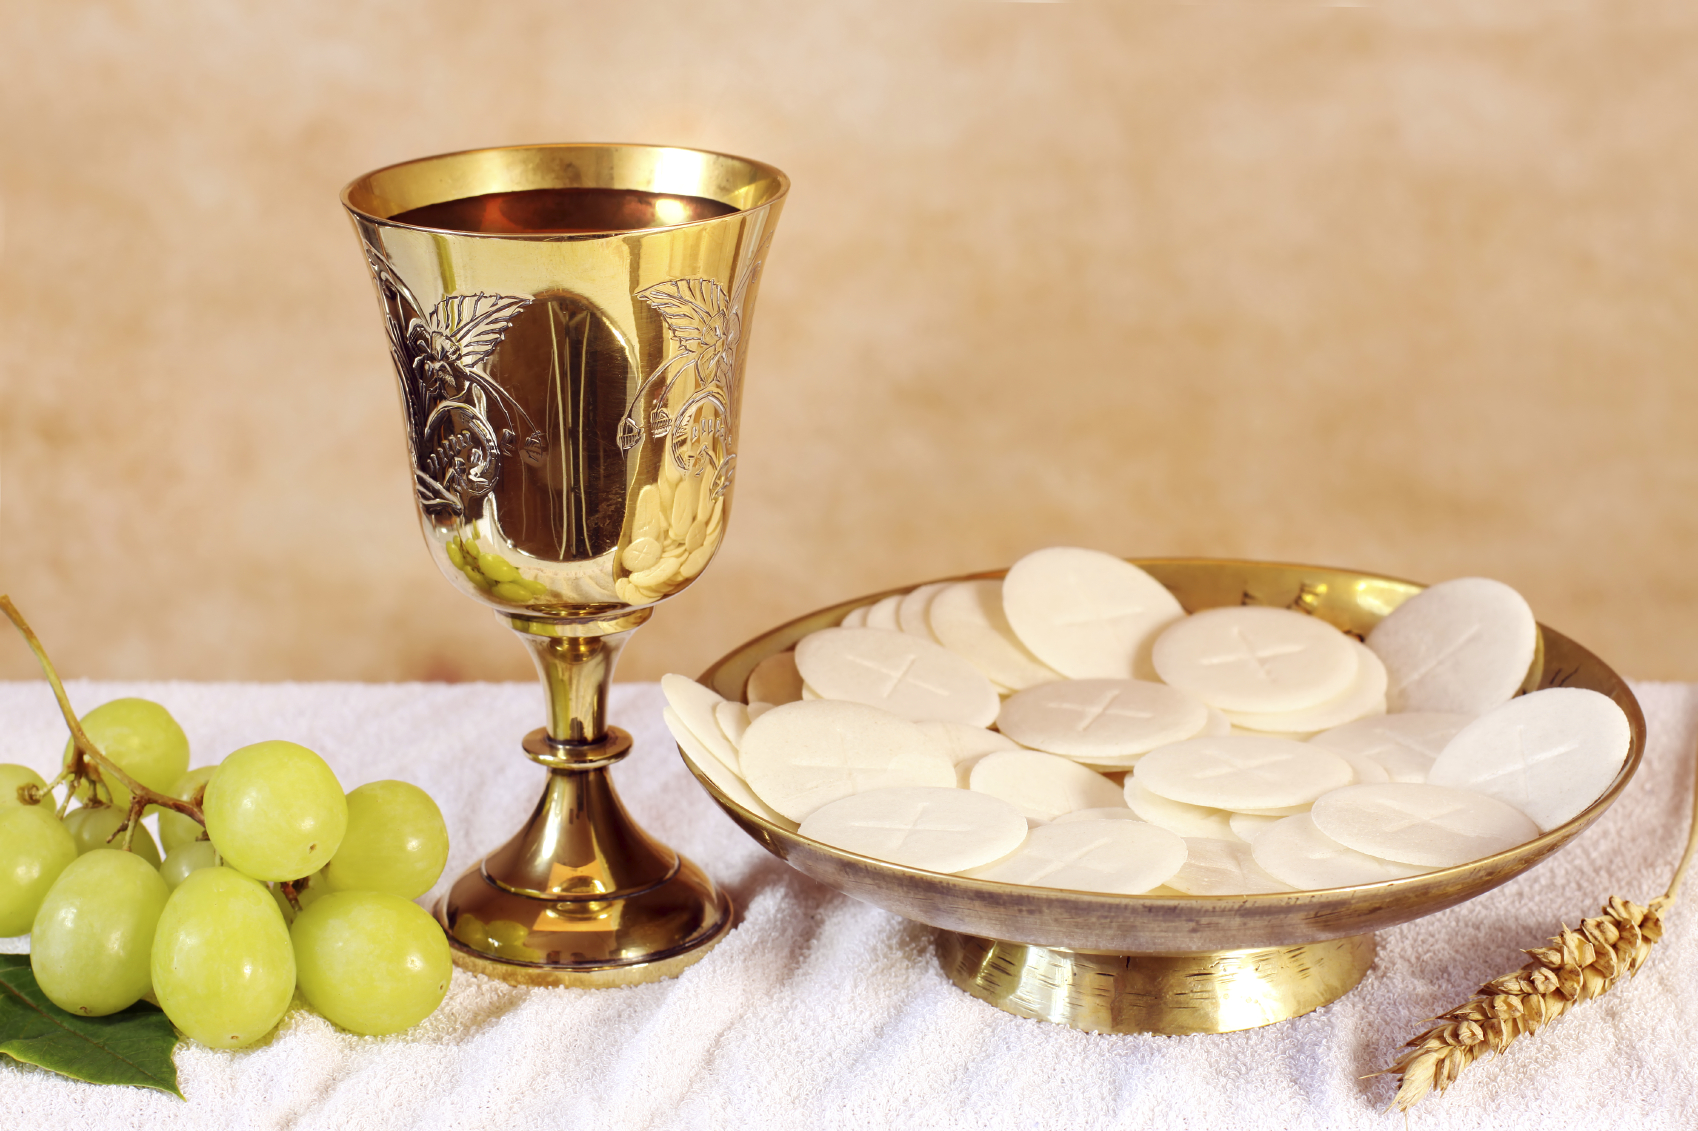 70+ Free Eucharist & Communion Images - Pixabay